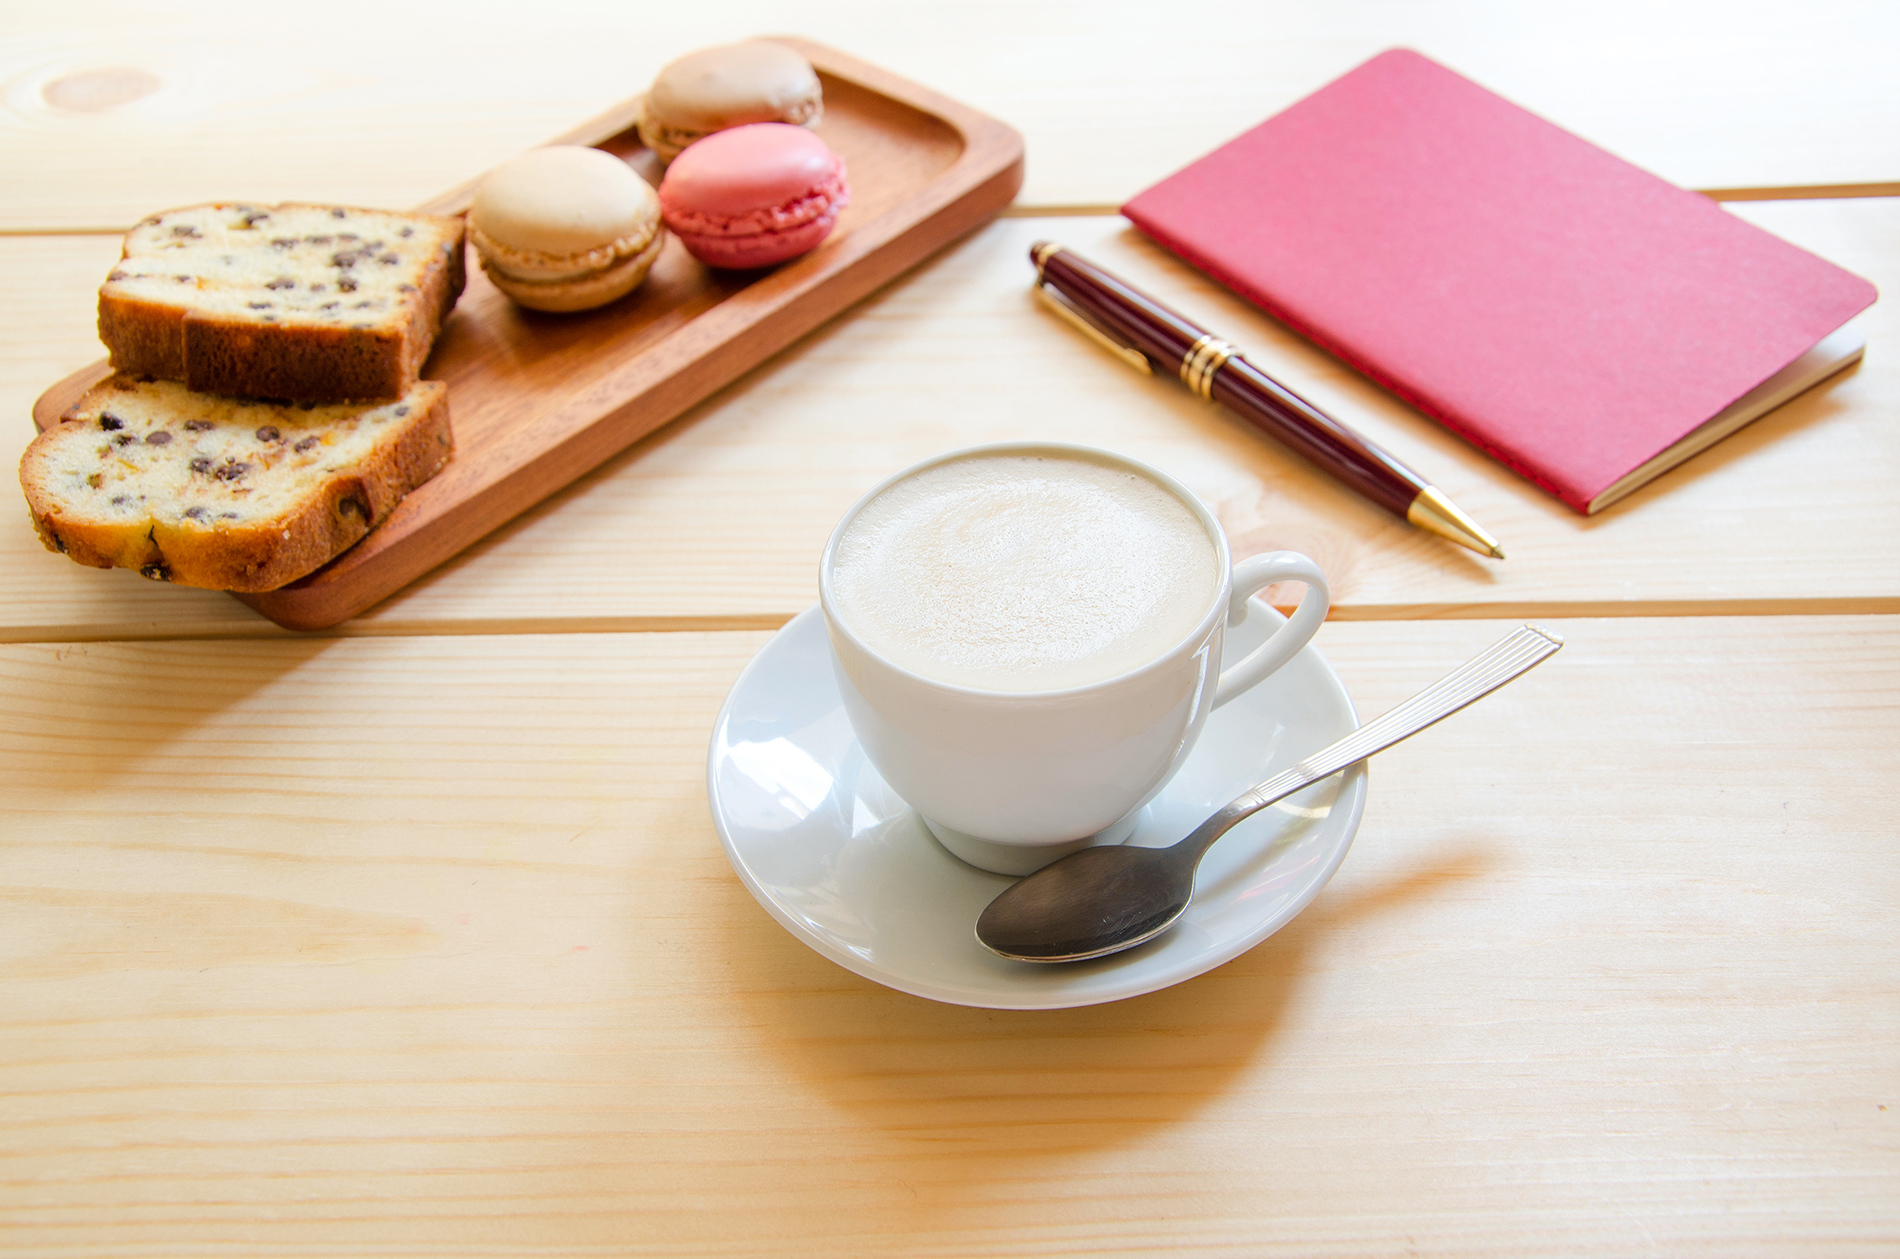 Macarons biscuits and a cup of coffee 53753